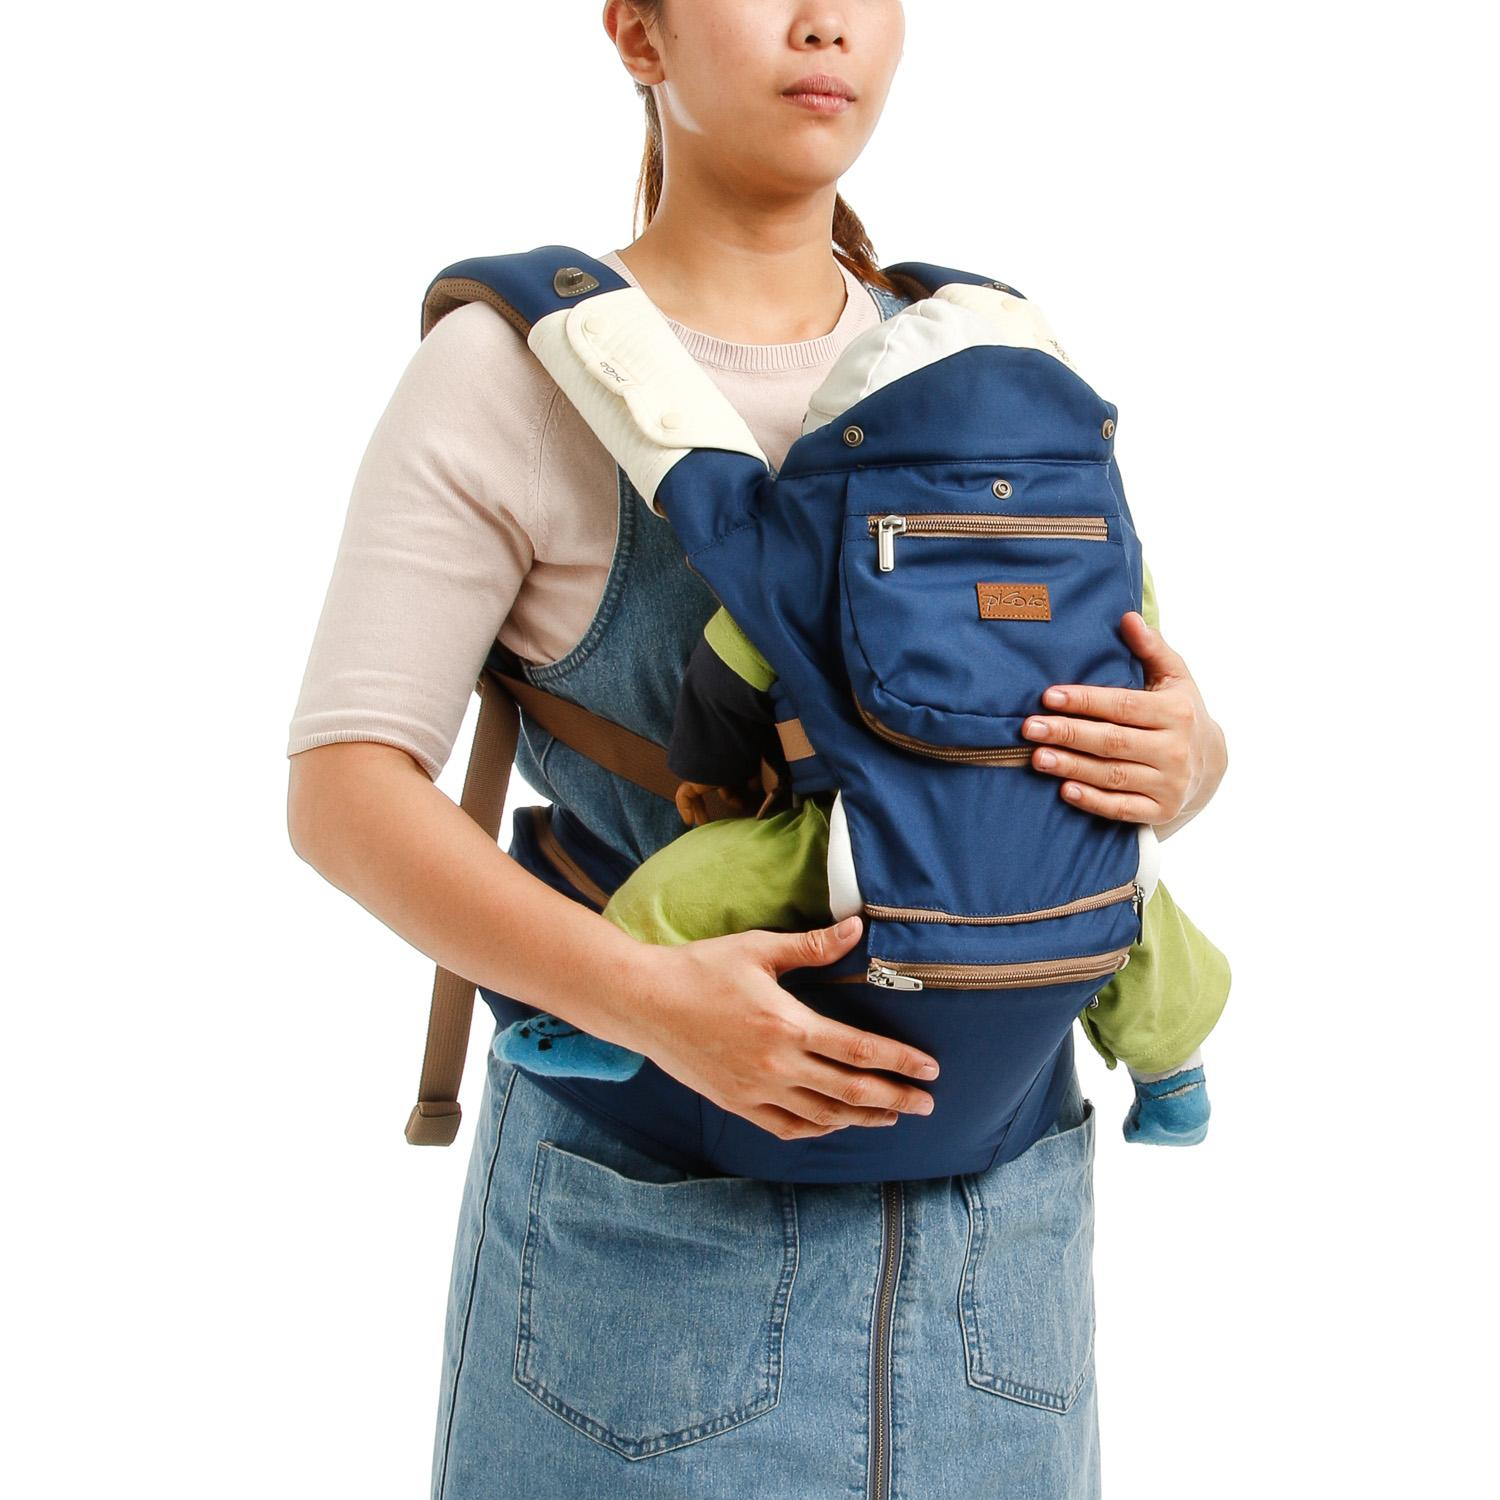 11ae950fb50 Baby Carrier for sale - Baby Wrap Carrier online brands